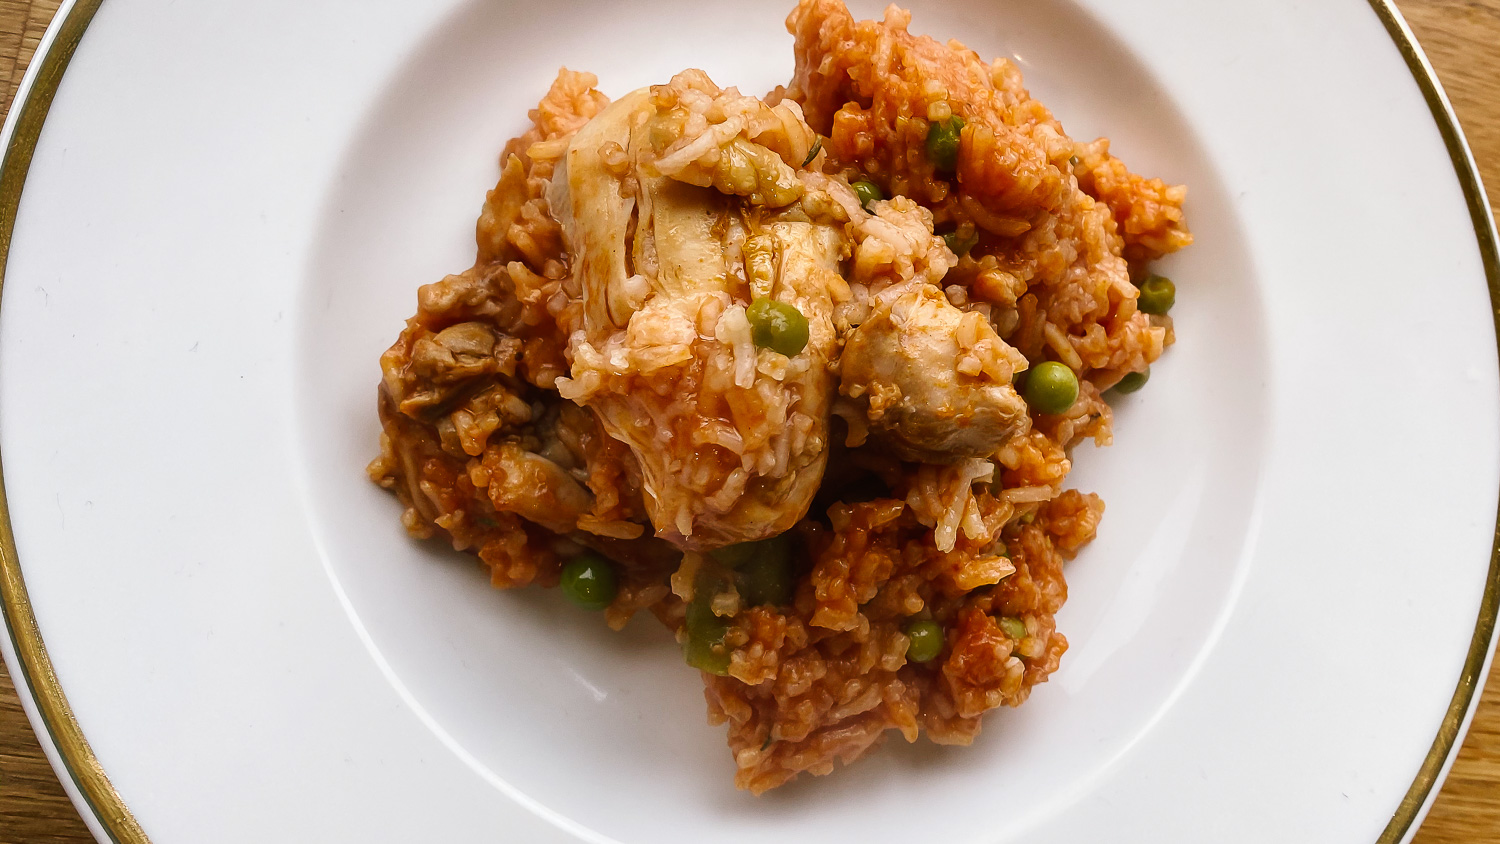 jollof rice recipe from Nigeria